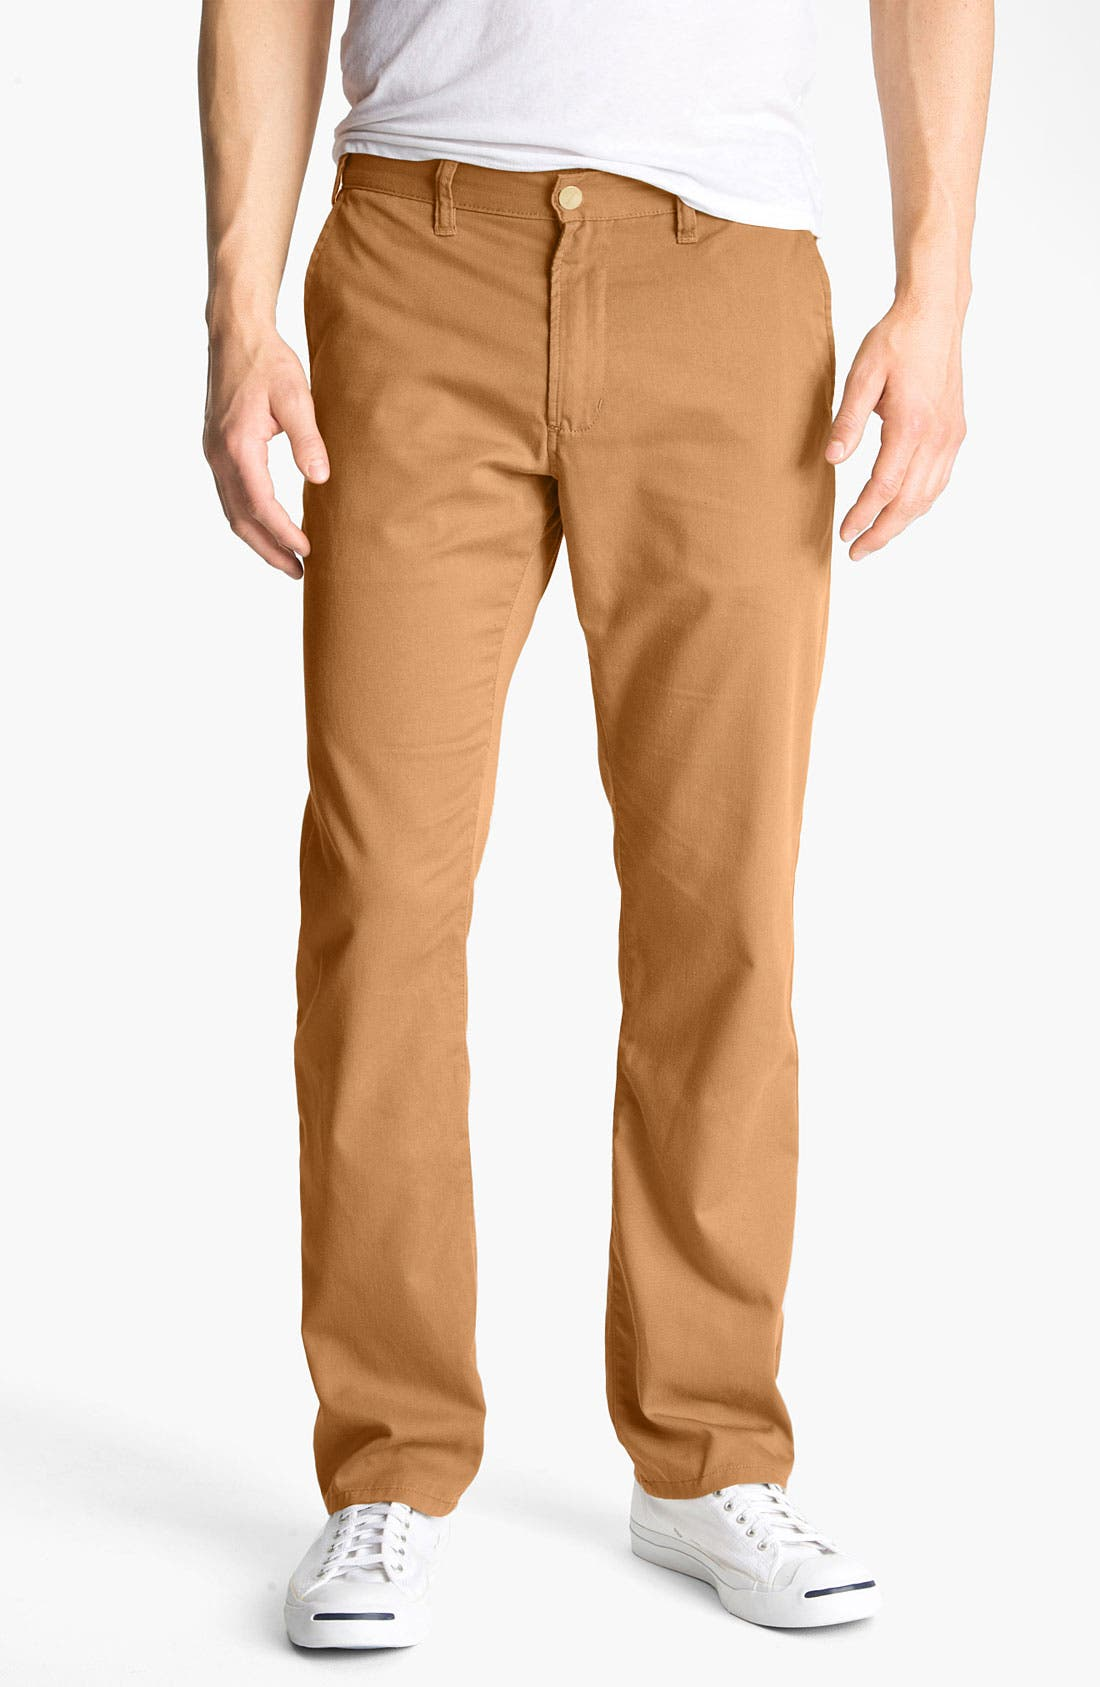 Alternate Image 1 Selected - Toddland 'The Greatest Pants in the Universe' Straight Leg Chinos (Online Only)